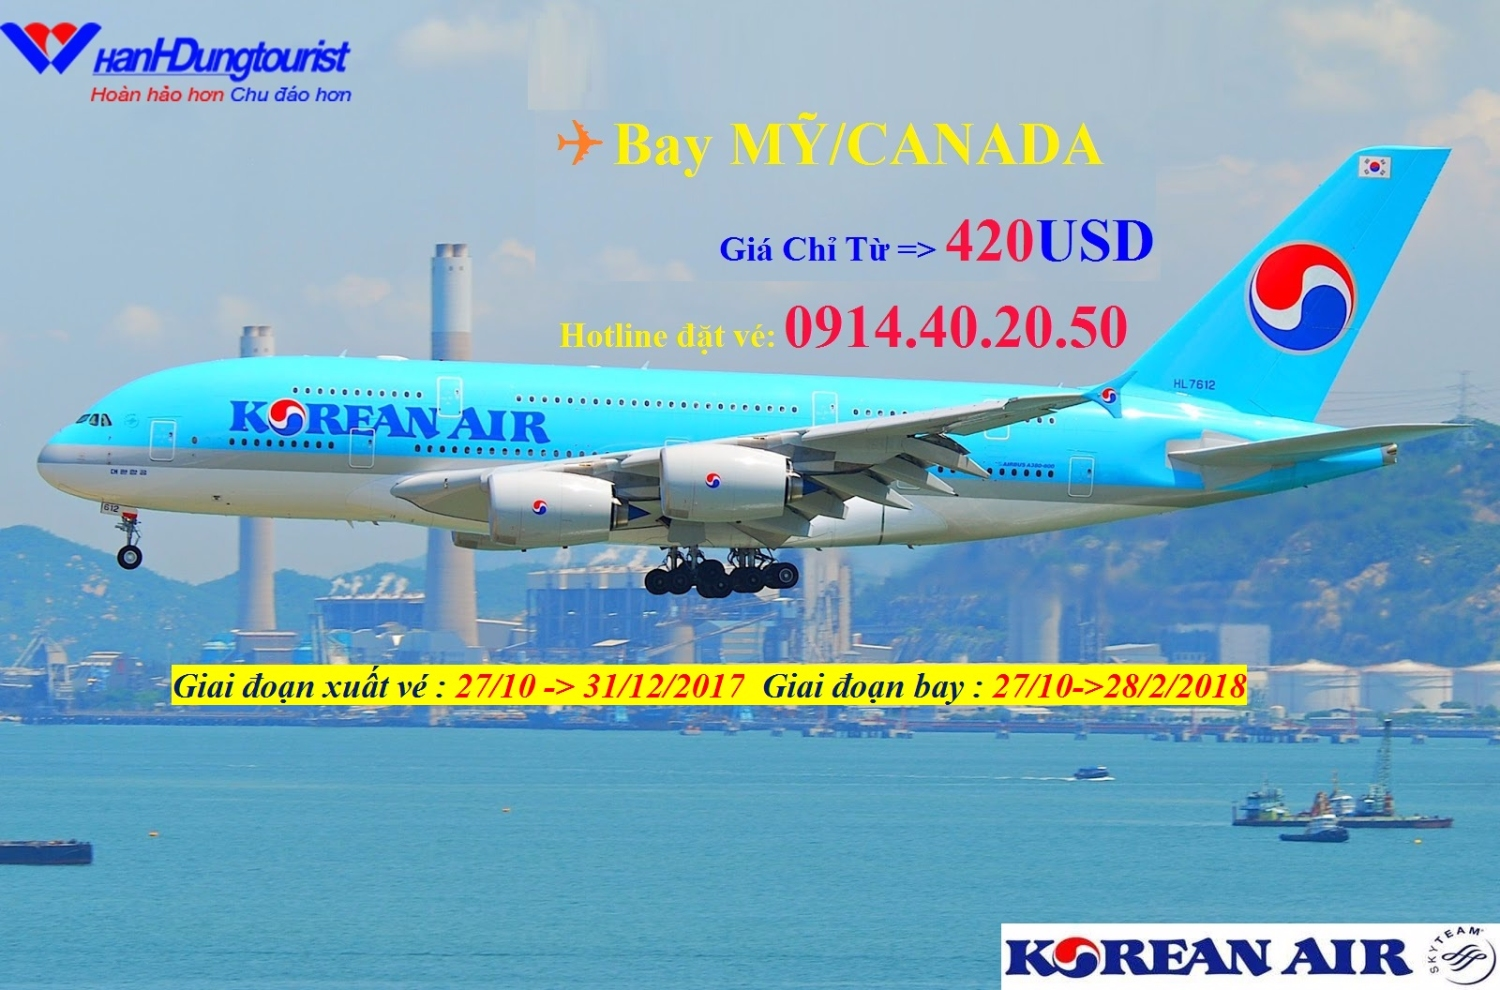 korean air22